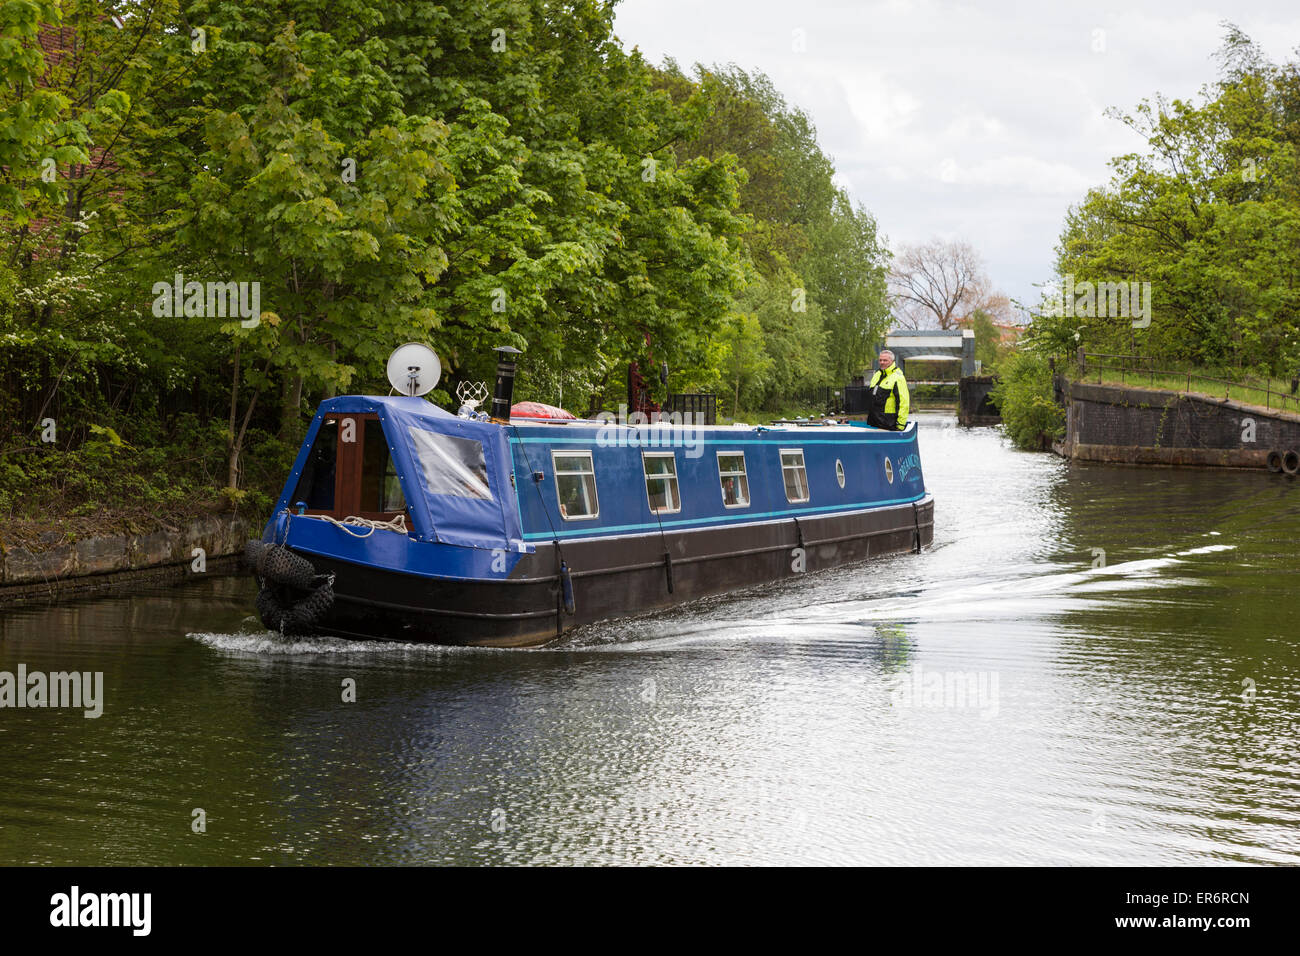 Narrowboat on the Bridgewater Canal, Manchester - Stock Image